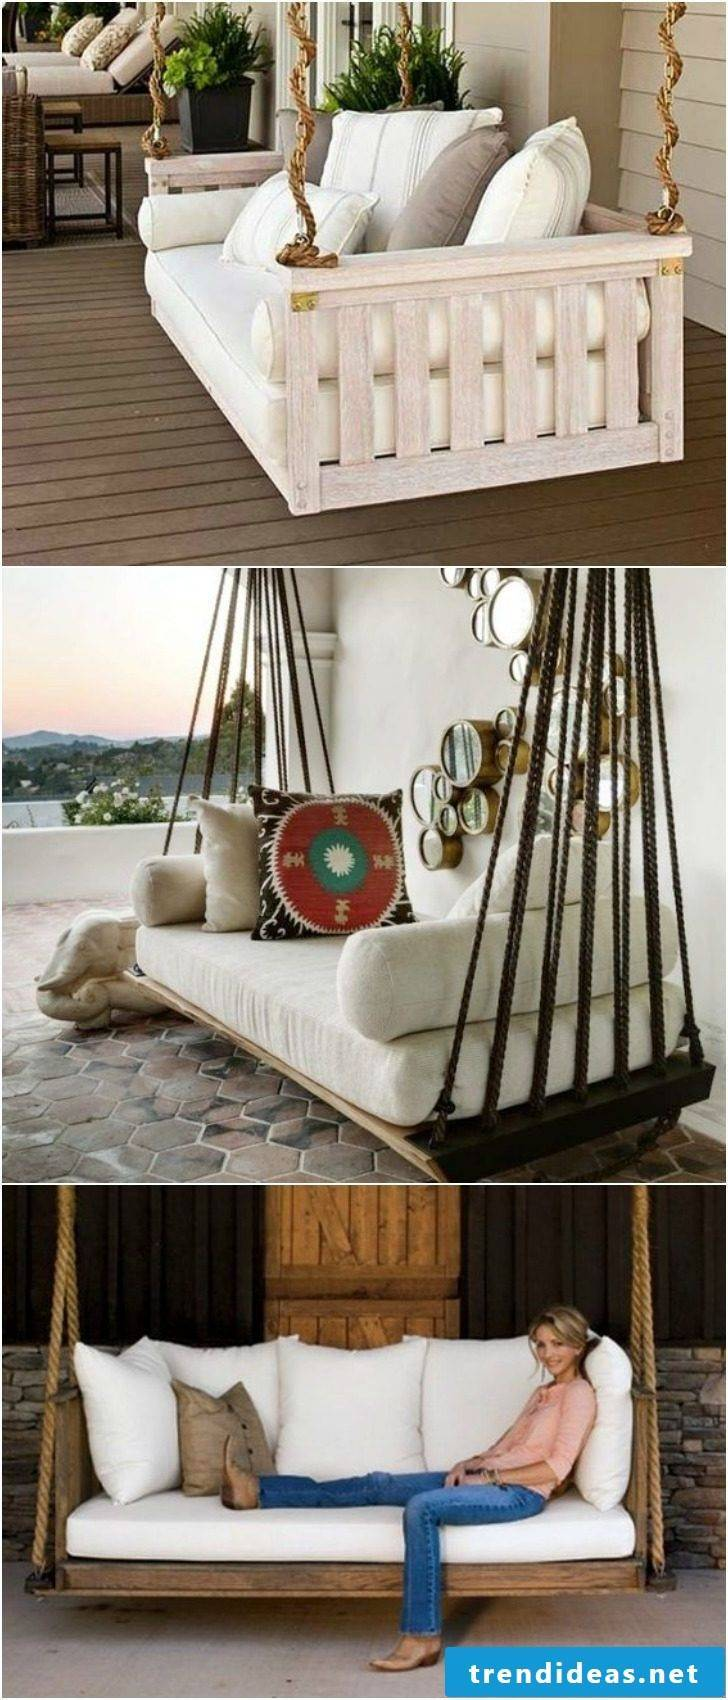 Hanging bed on the balcony